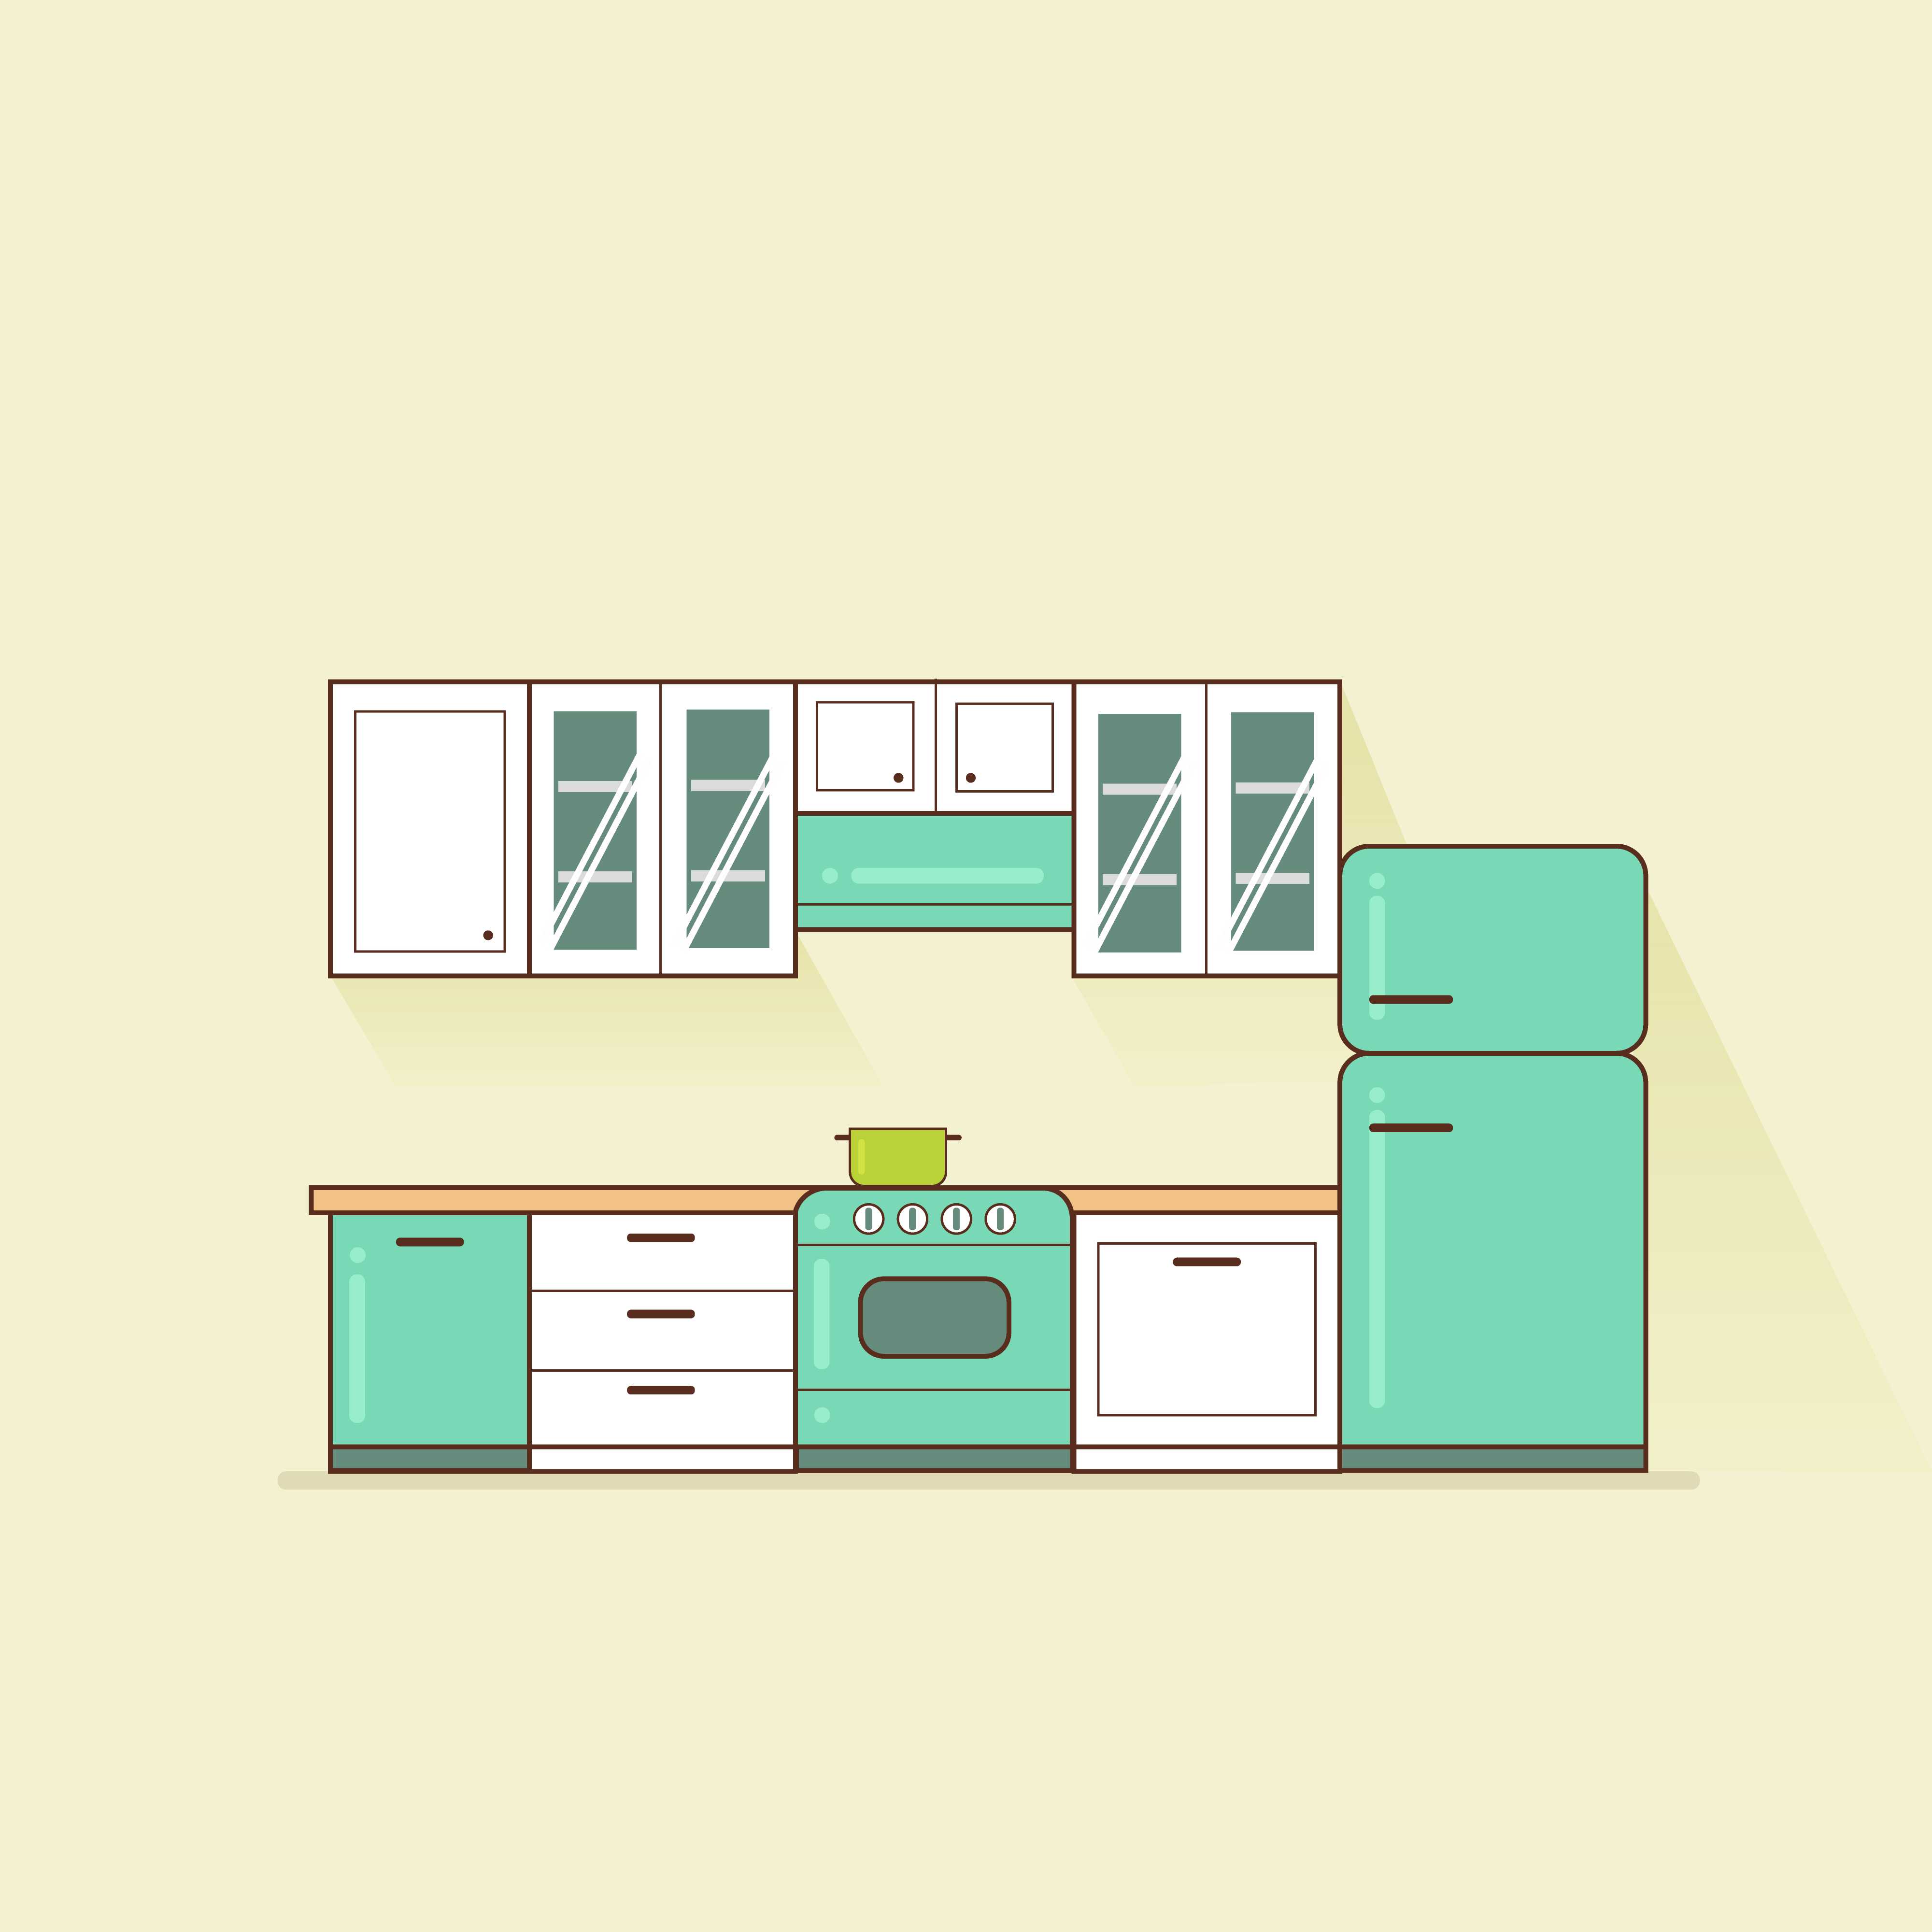 Modular Kitchen with Cabinets and Equipment - Download ...